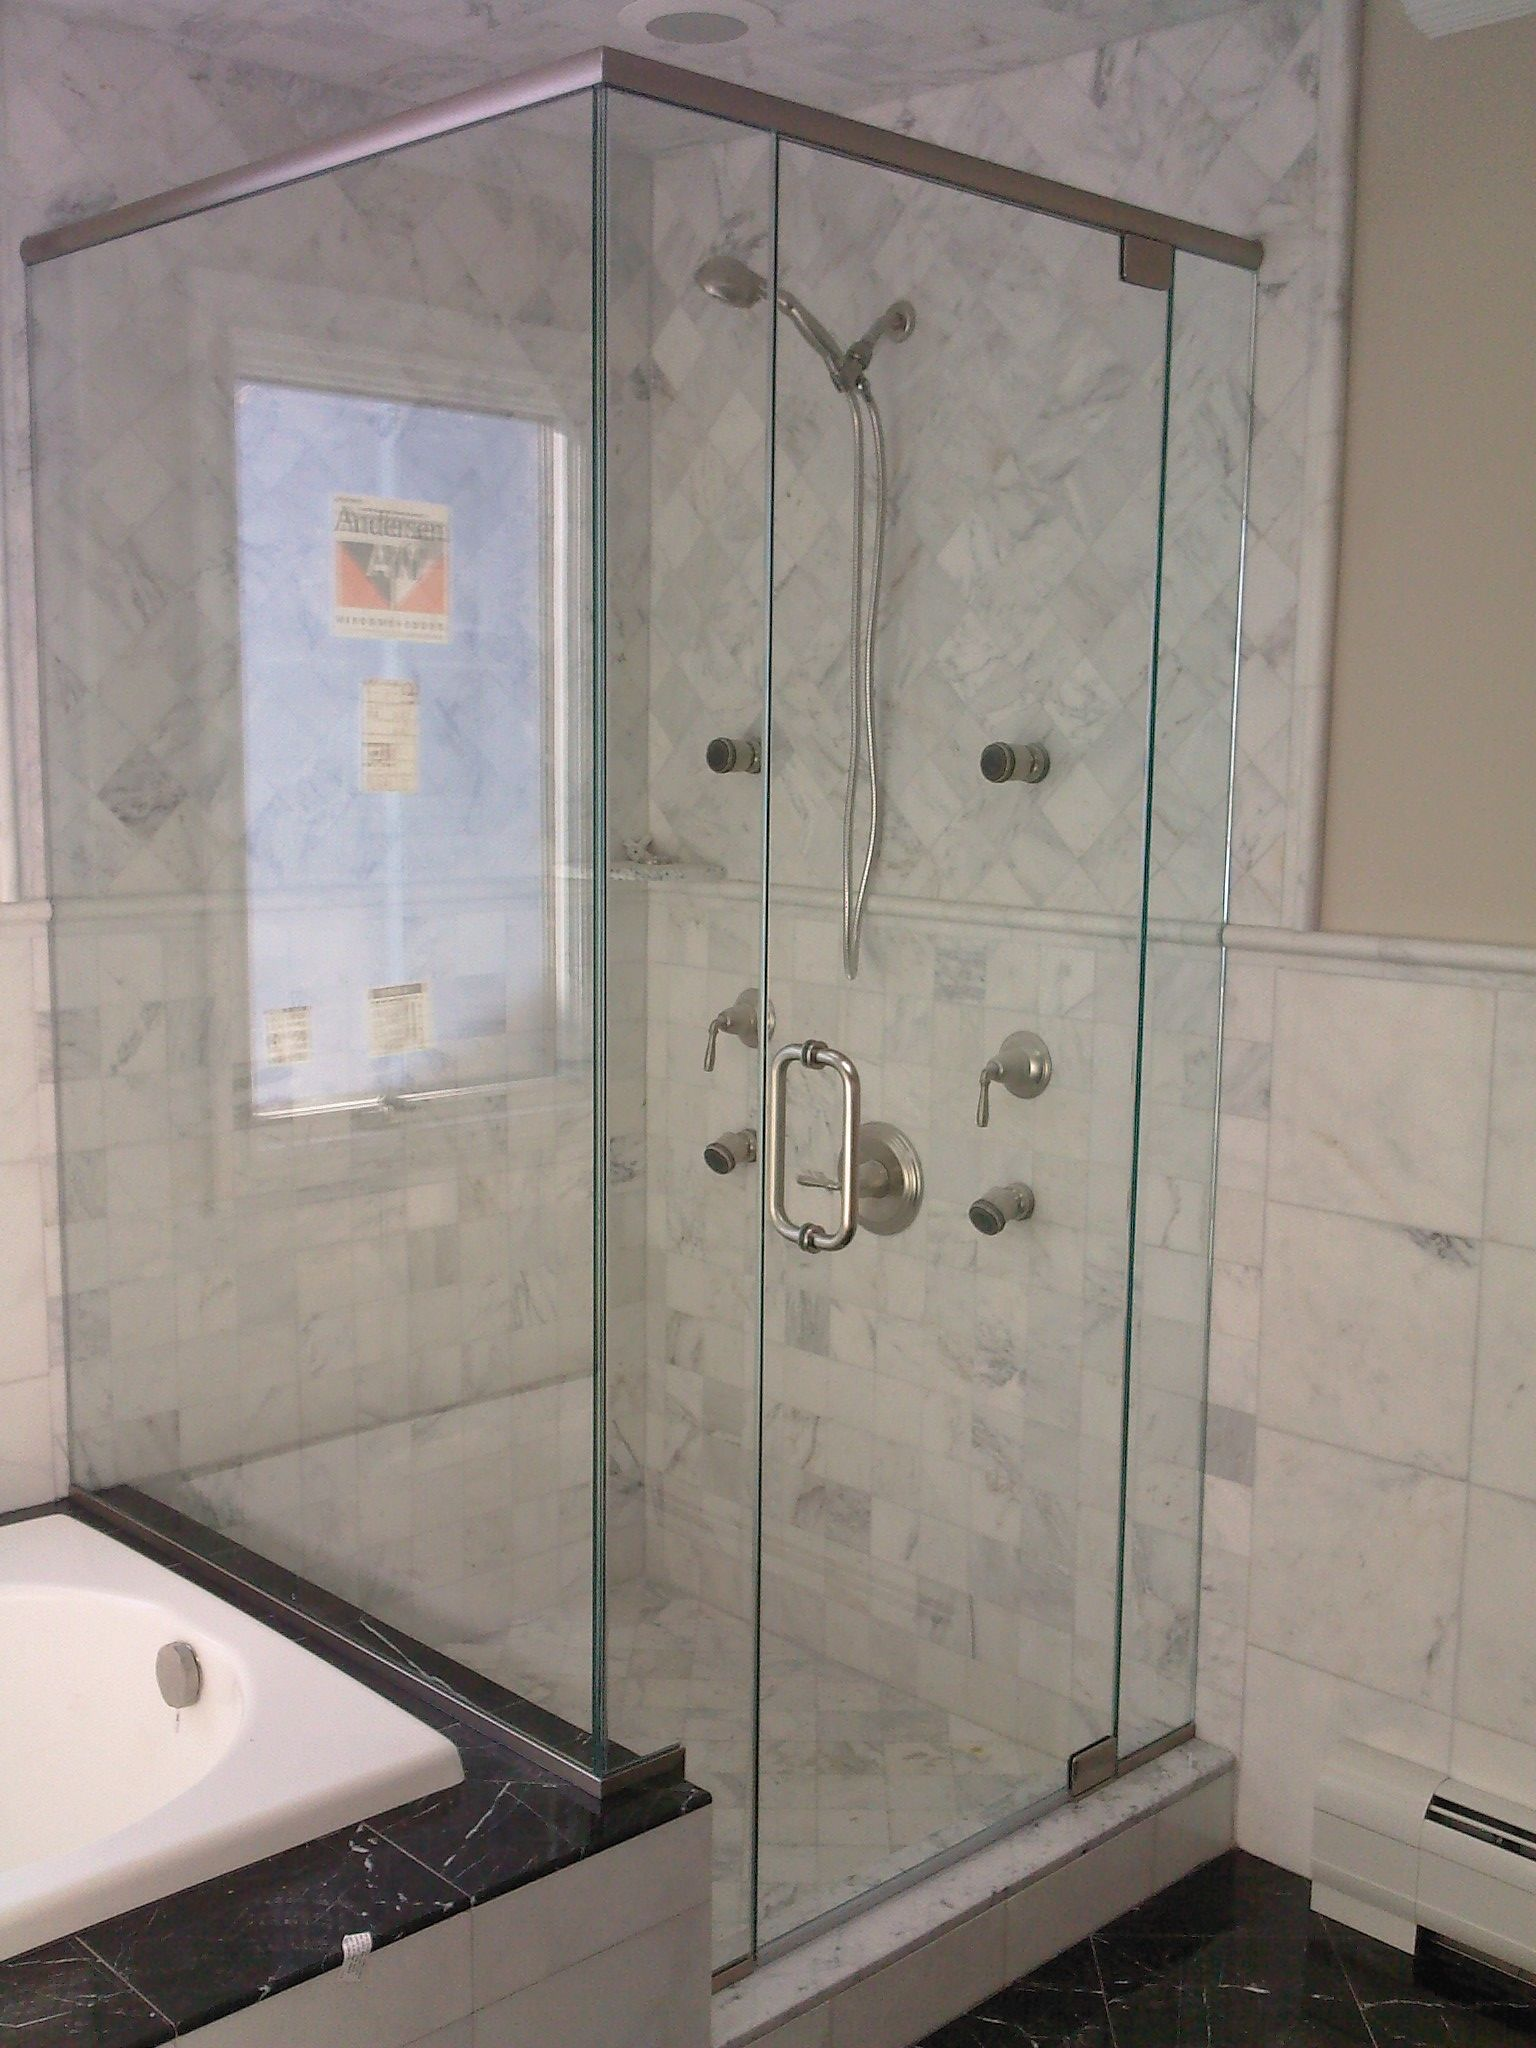 Marble tile patterns and glass shower wall on edge of tub surround ...